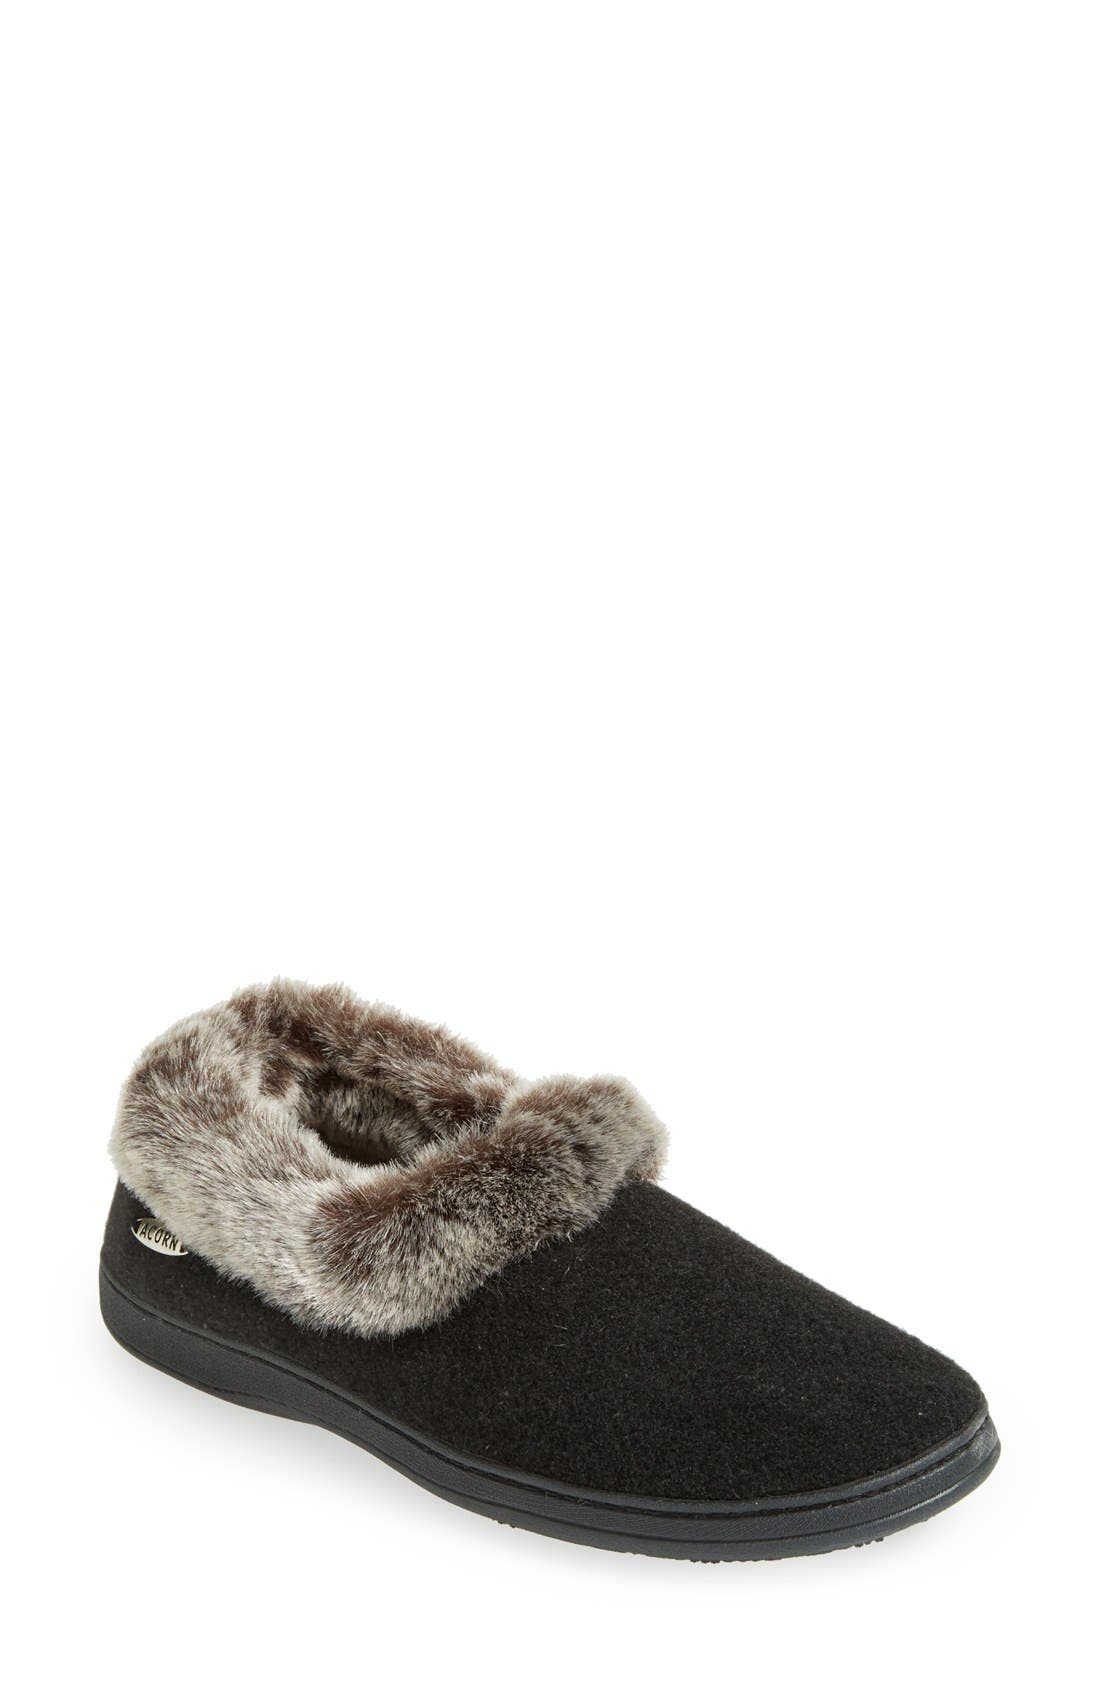 'Chinchilla Collar' Faux Fur Slipper,                             Main thumbnail 1, color,                             001